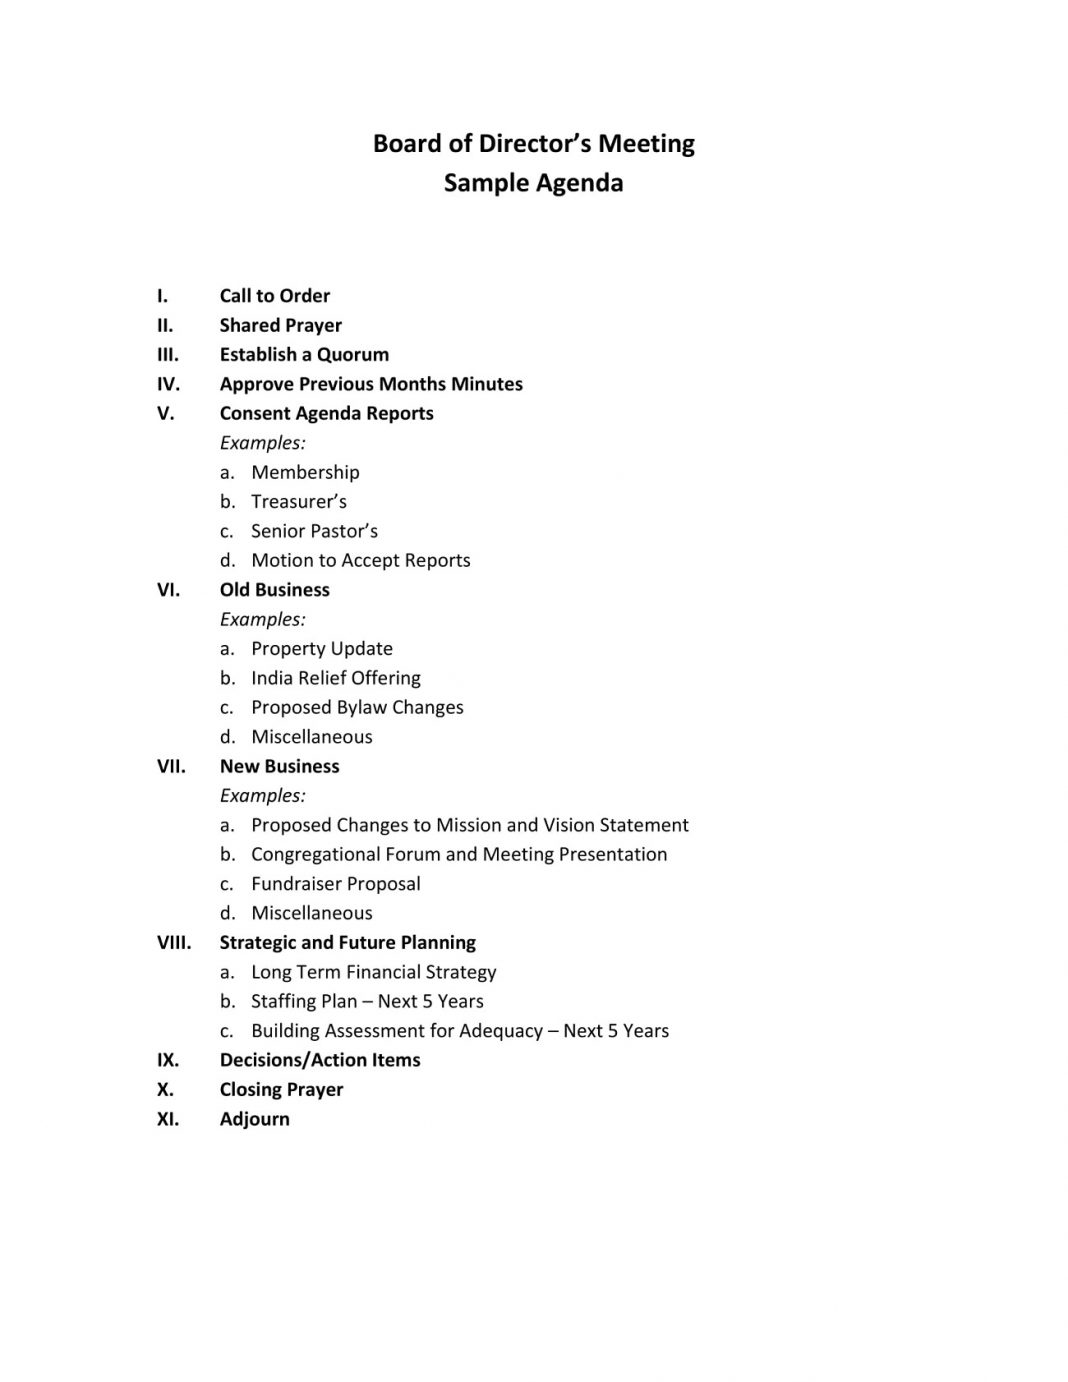 Board Director Church Meeting Agenda Staff Format How To Write A End Of Year Leadership Pdf Preside Over  Sample Template Large